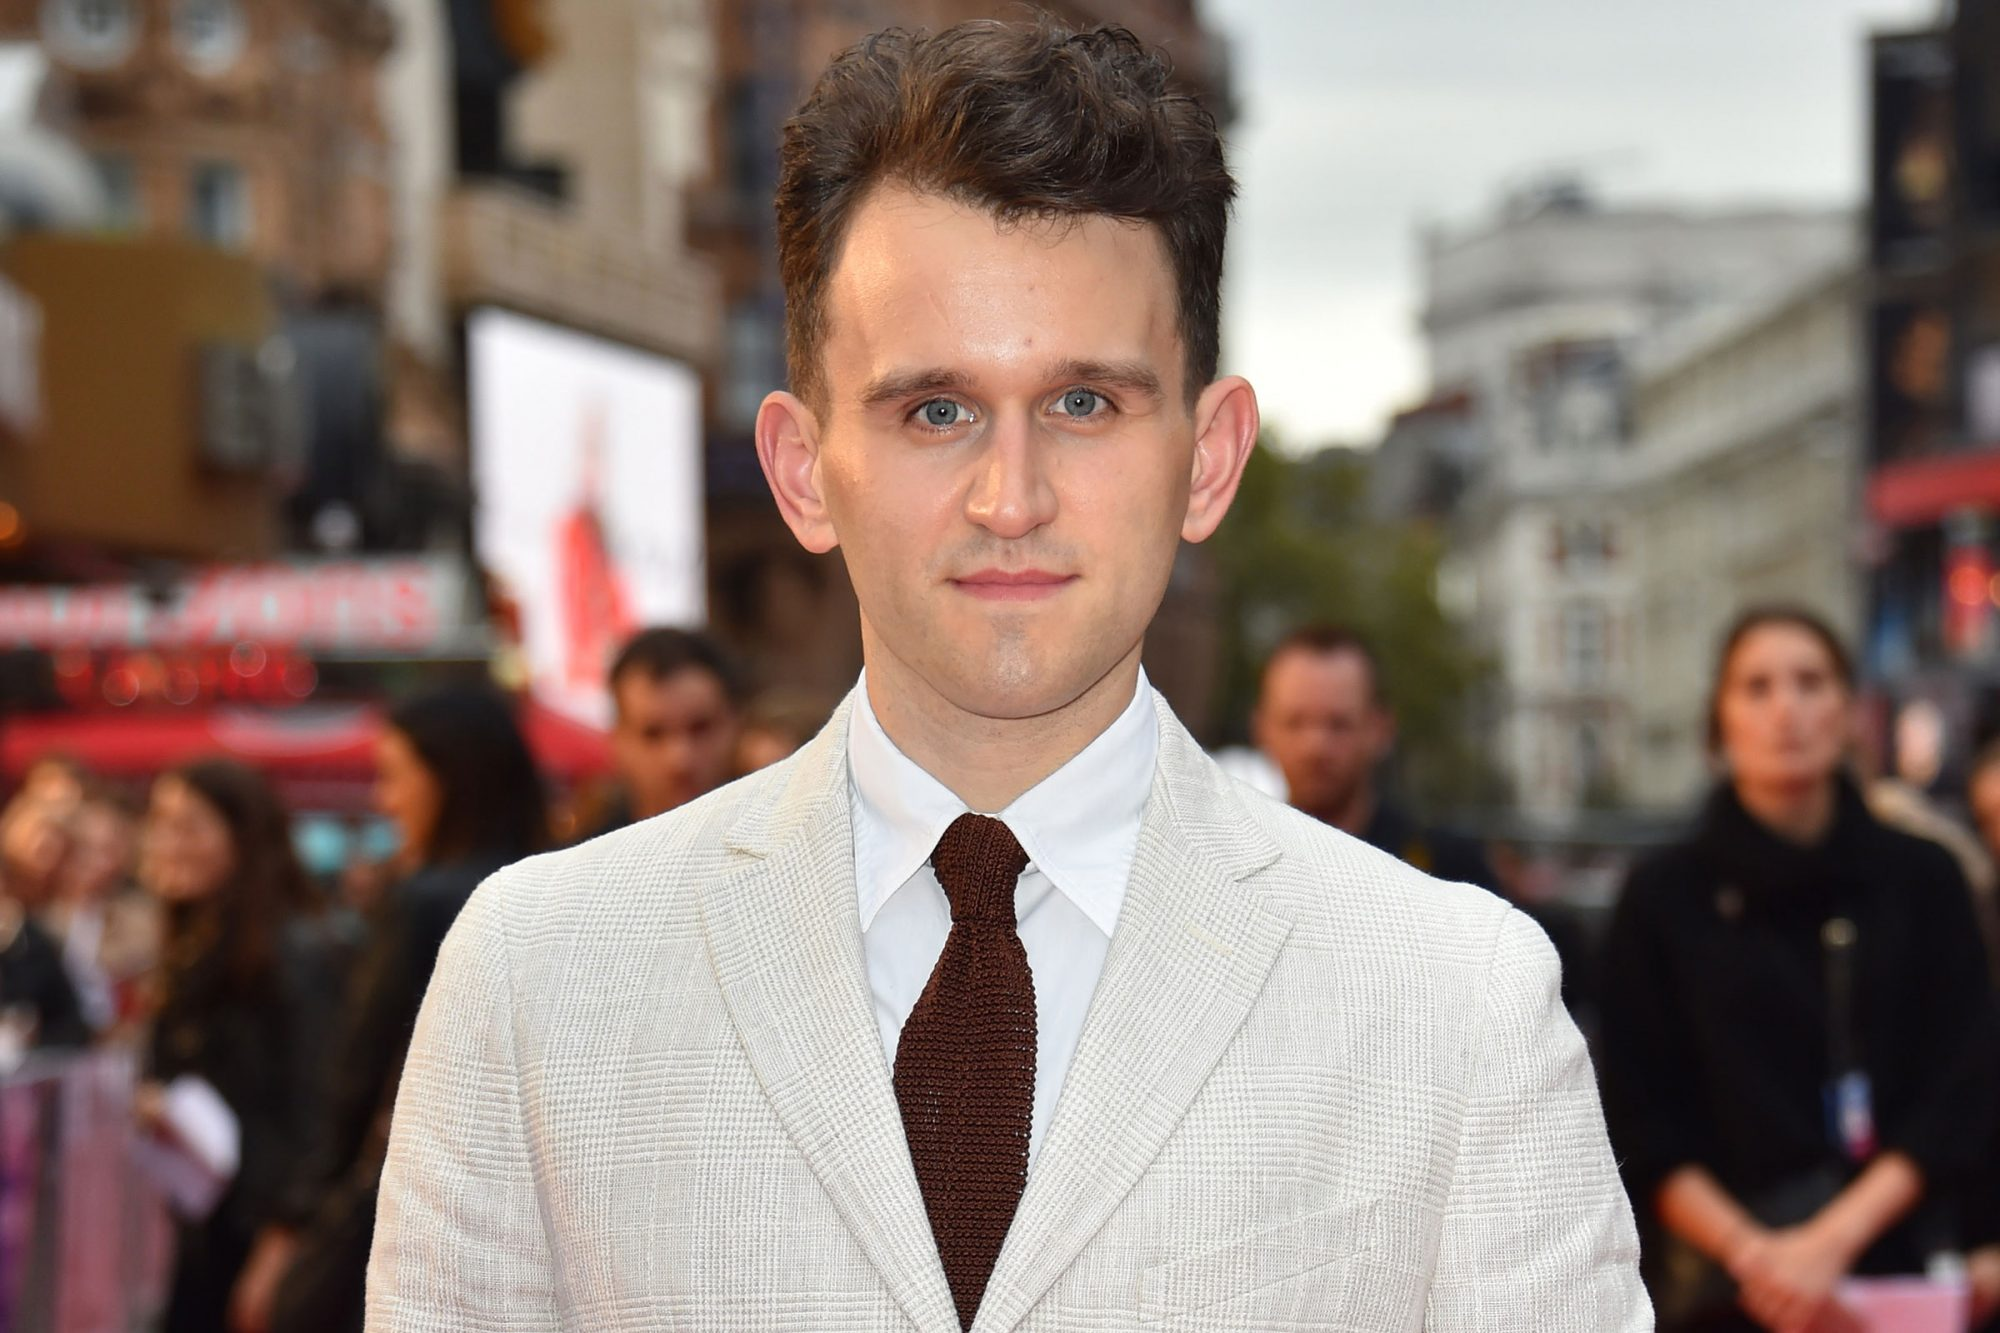 harry potter s dudley dursley actor harry melling gets his dark materials cameo ew com dudley dursley actor harry melling